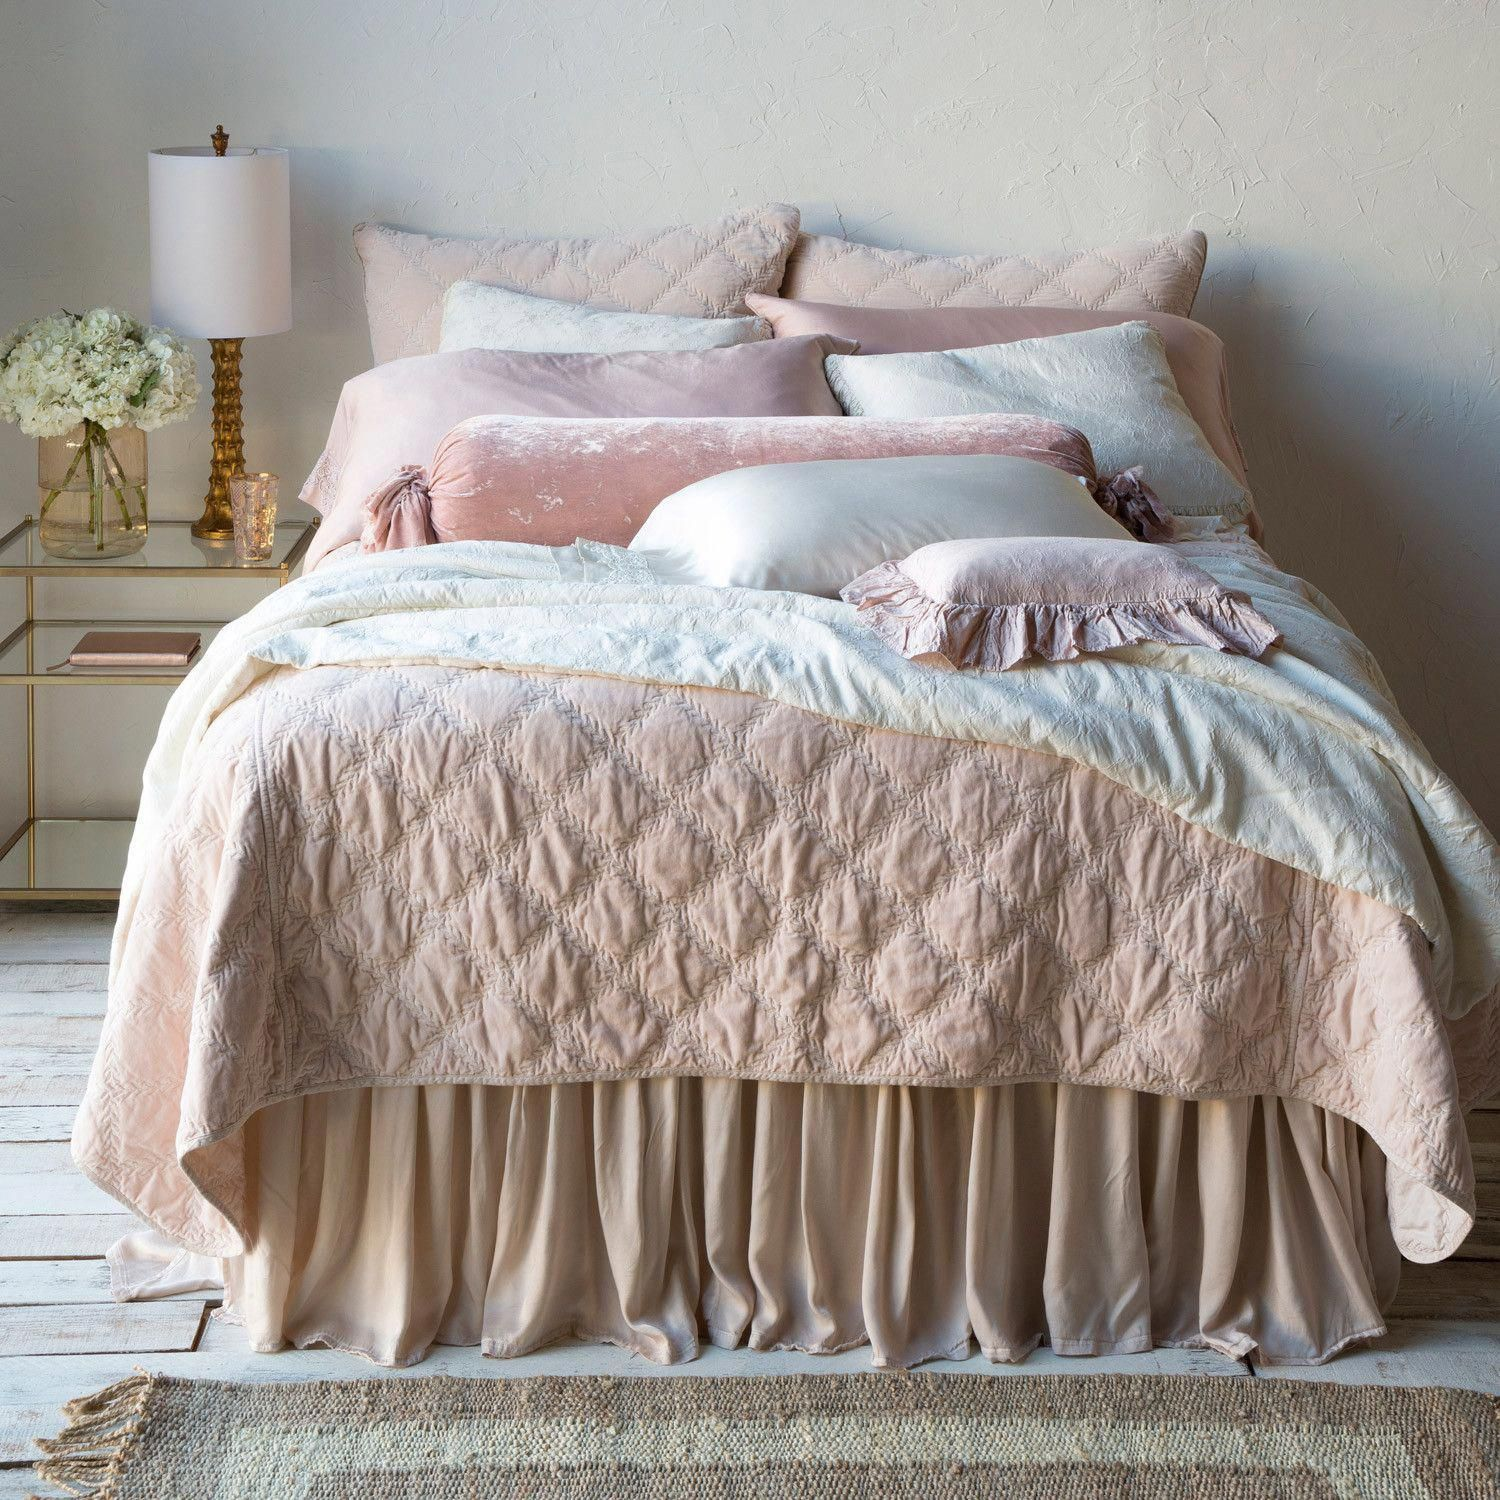 ExclusiveBedLinenIdeas Luxury bedding, Target shabby